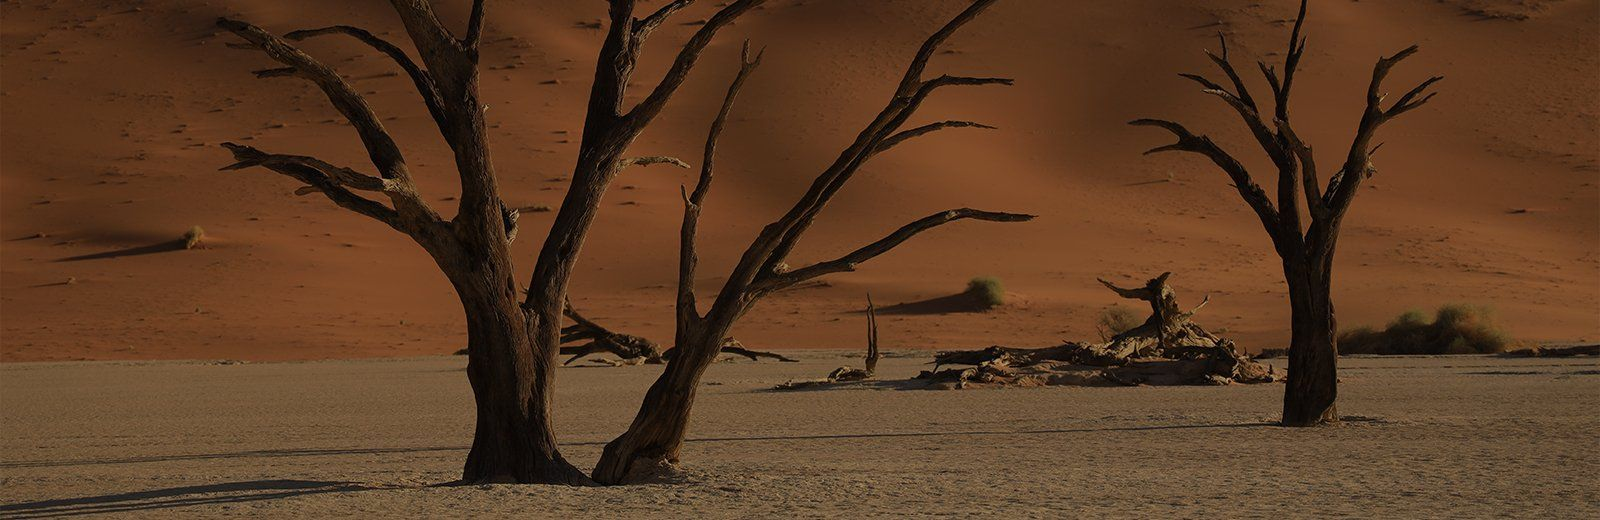 Beautiful image of trees on sand dunes at sunset taken on Canon EOS-R